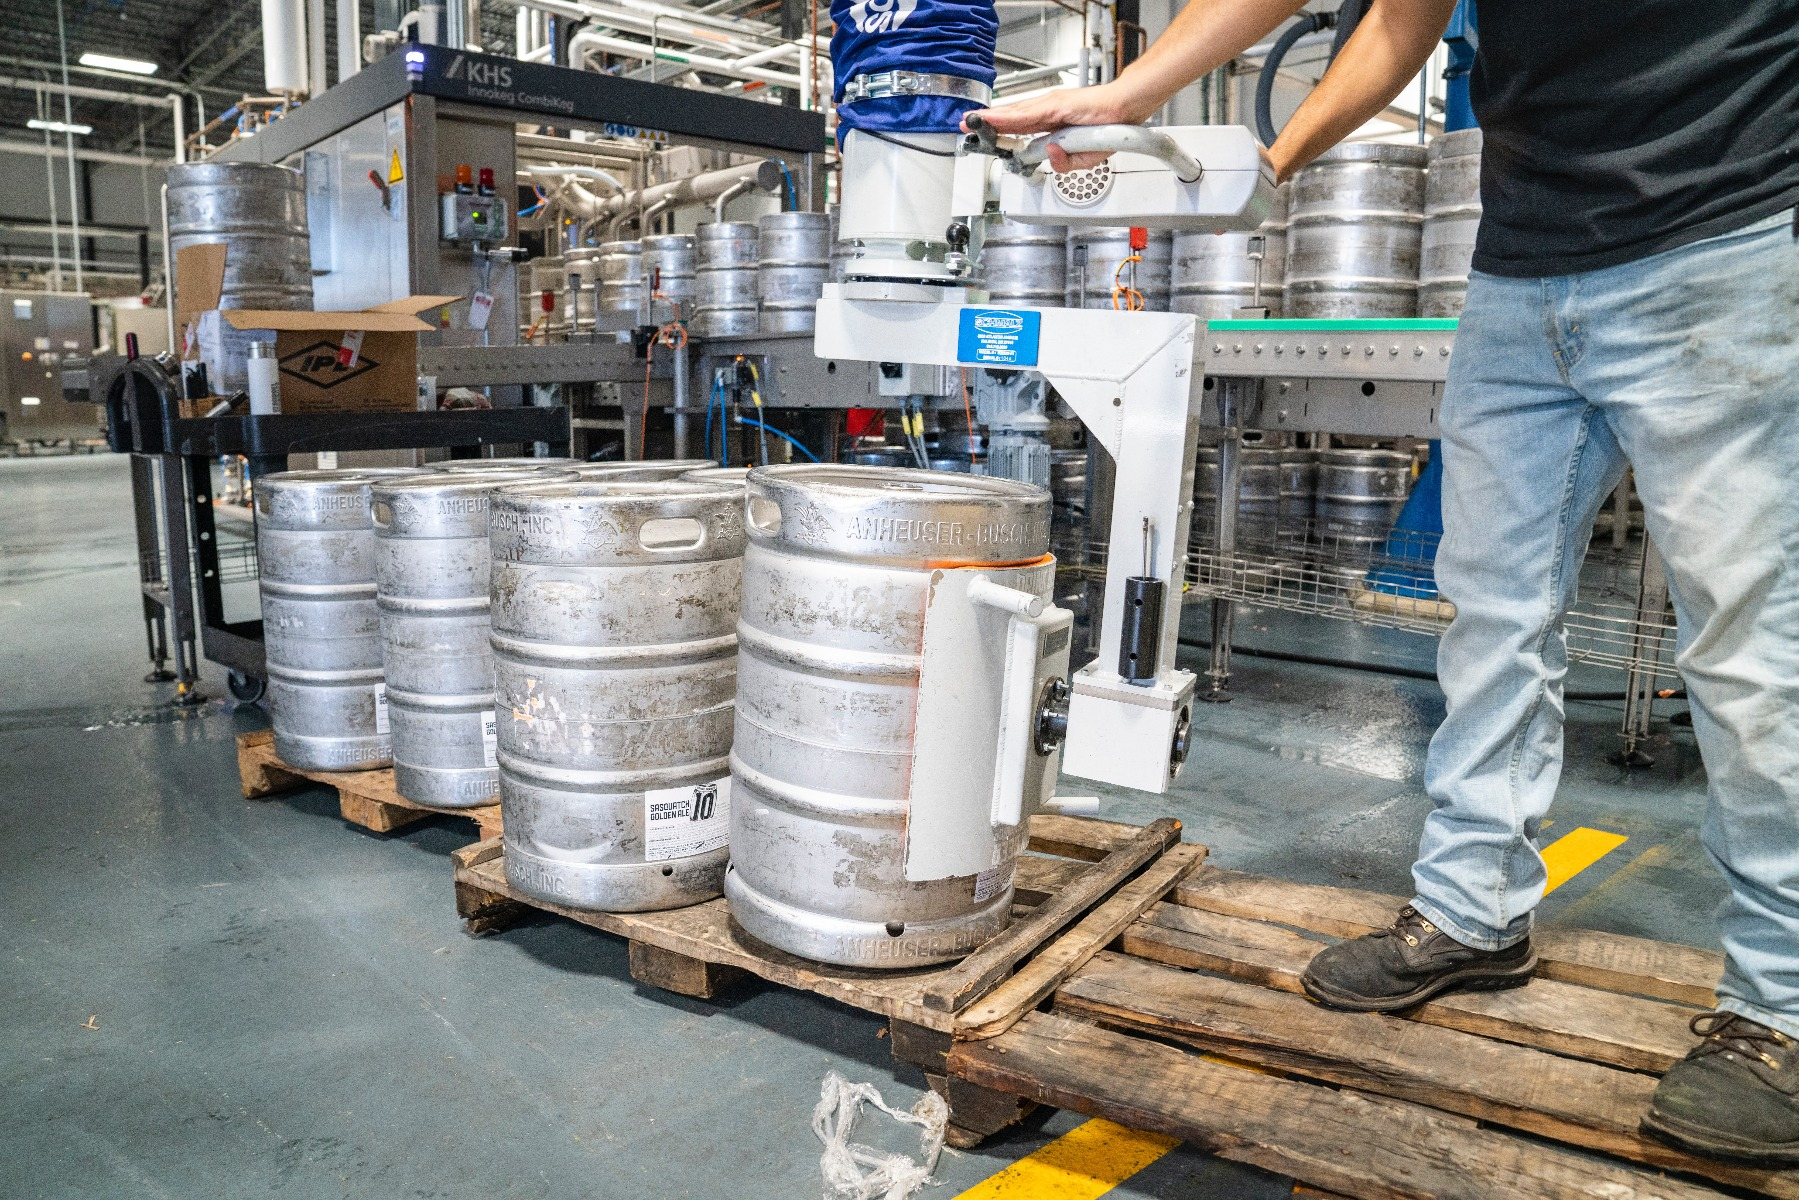 Man handling barrels in warehouse